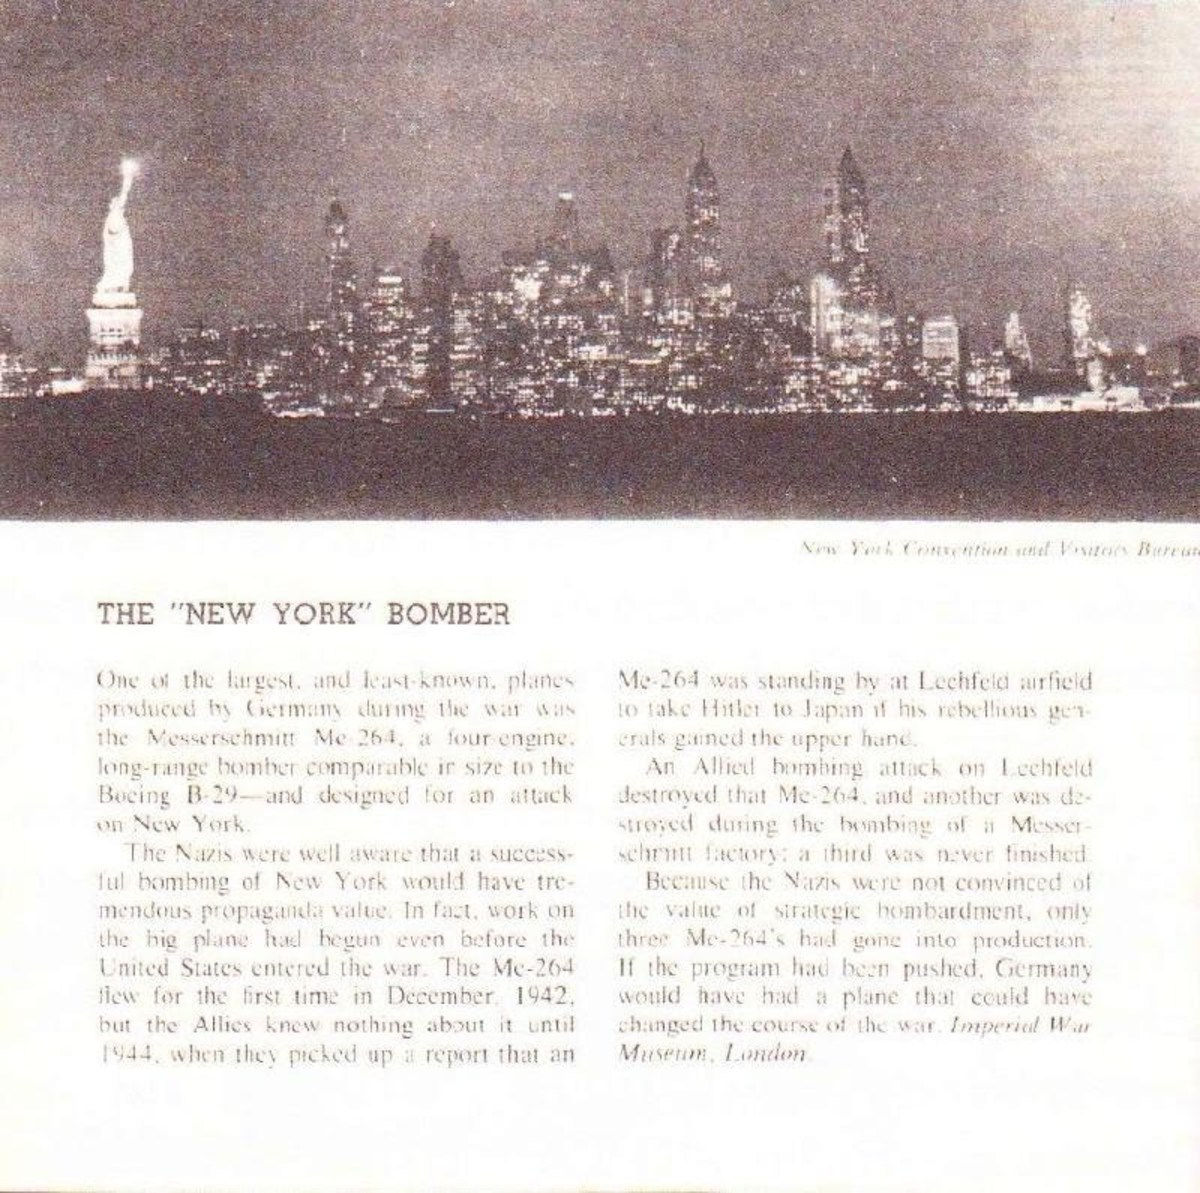 Photo of New York allegedly taken by JU390 during its secret trial flight